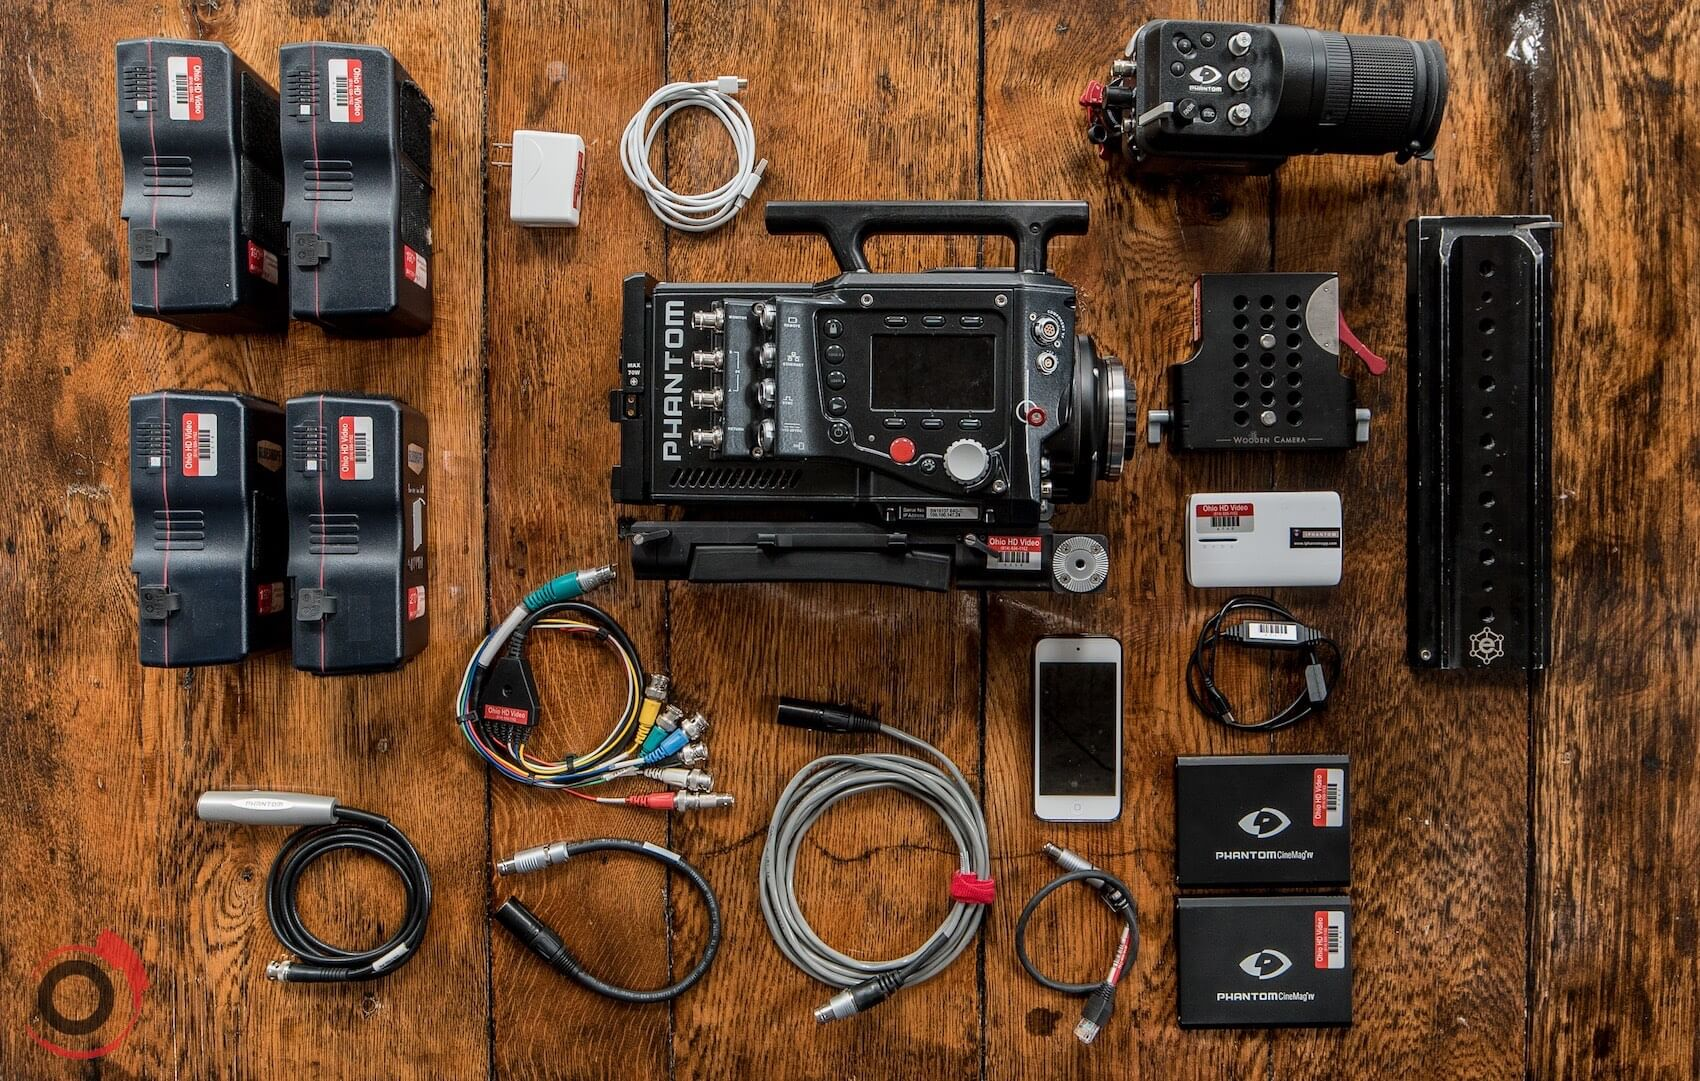 The Essential Guide for Crafting Film Budgets (with FREE Film Budget Template) - Video Camera Rental Kit Fee